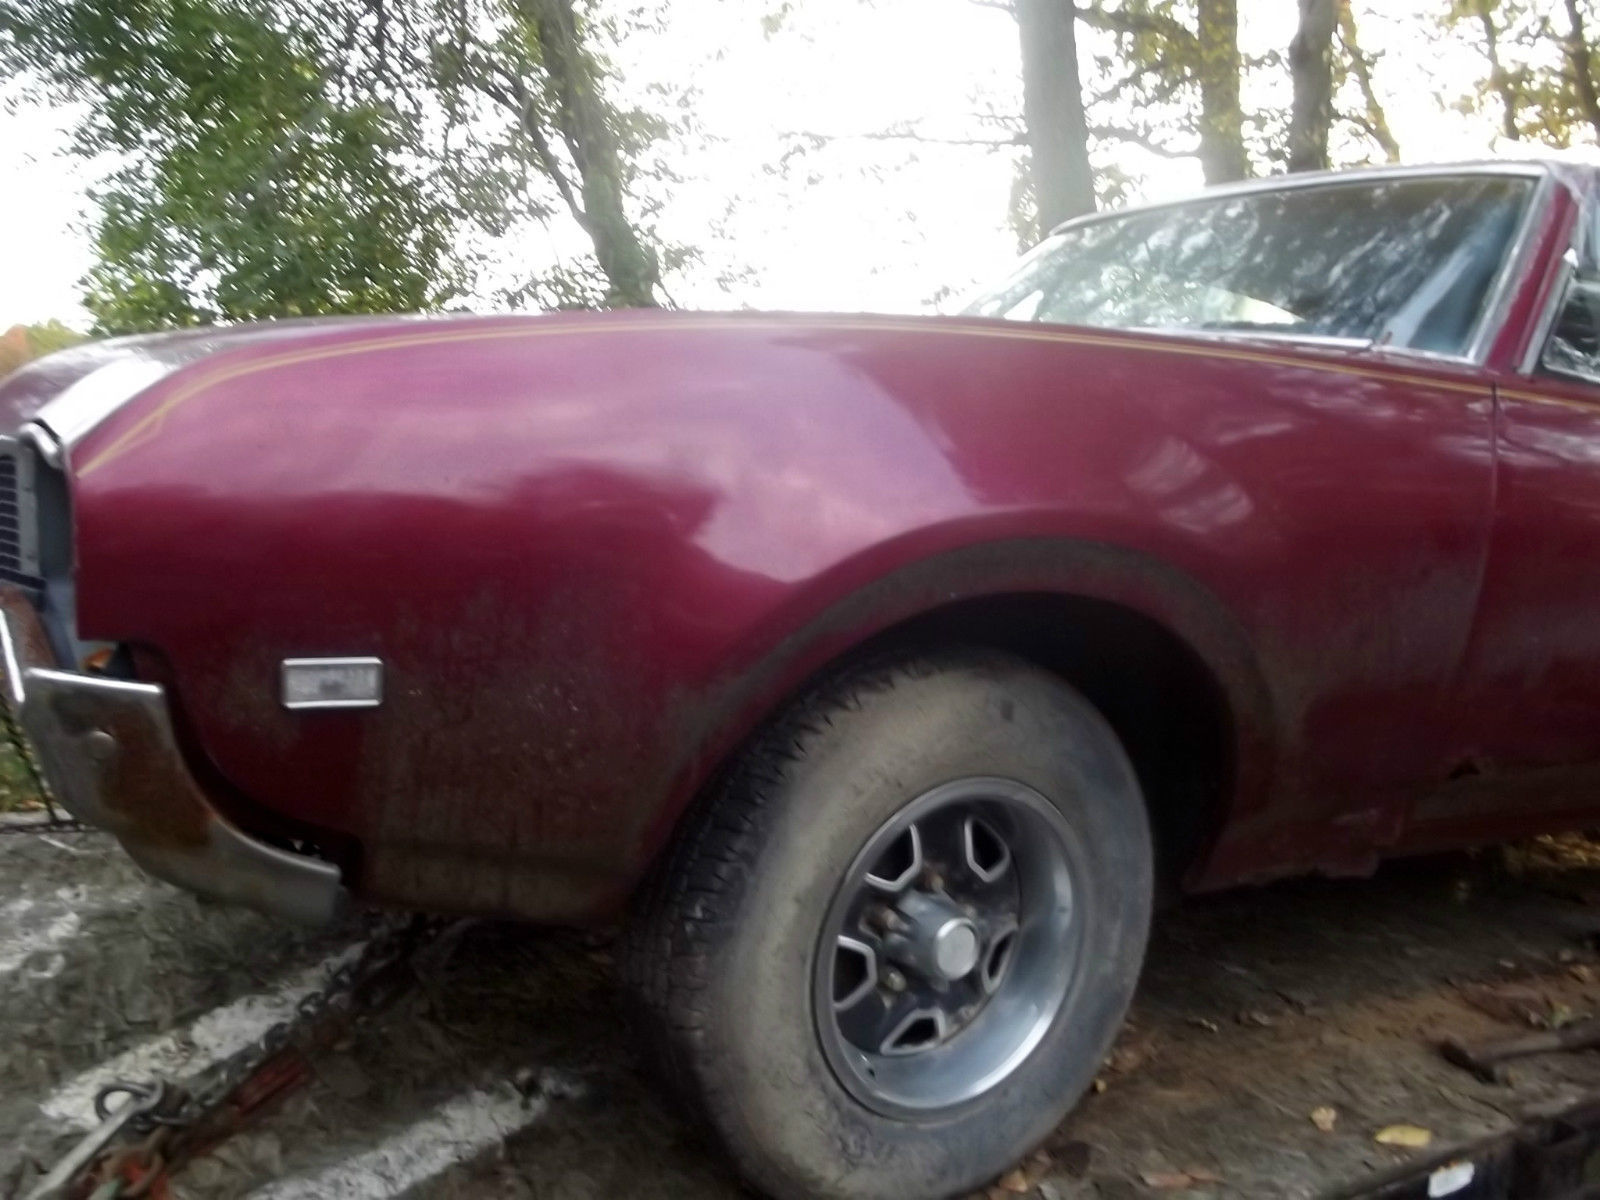 1968 olds cutlass 442 real 442 restore project black